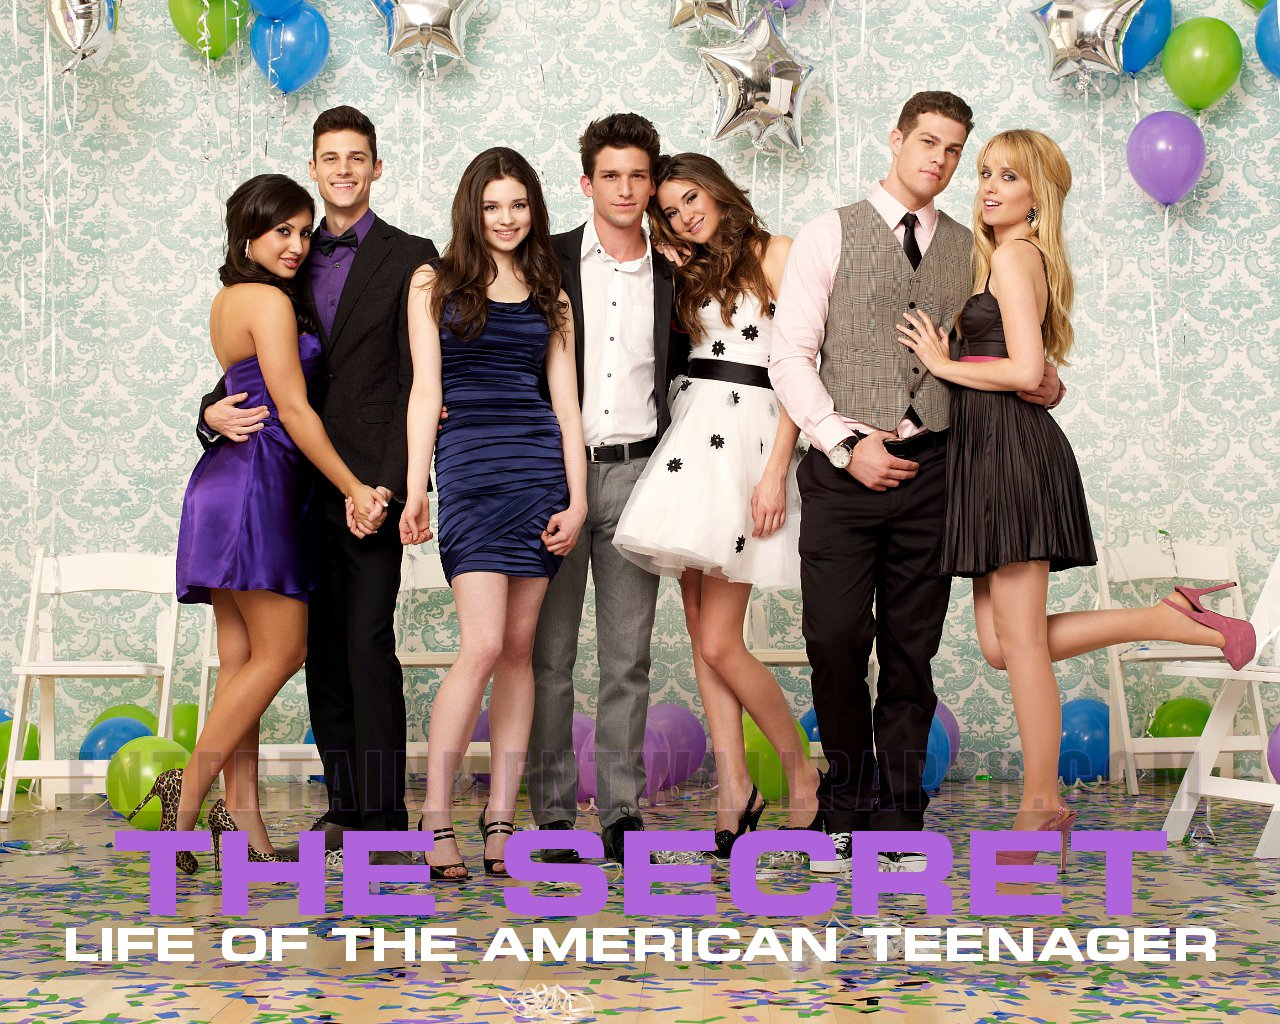 The Secret Life of the American Teenager Wallpaper   20031841 1280x1024